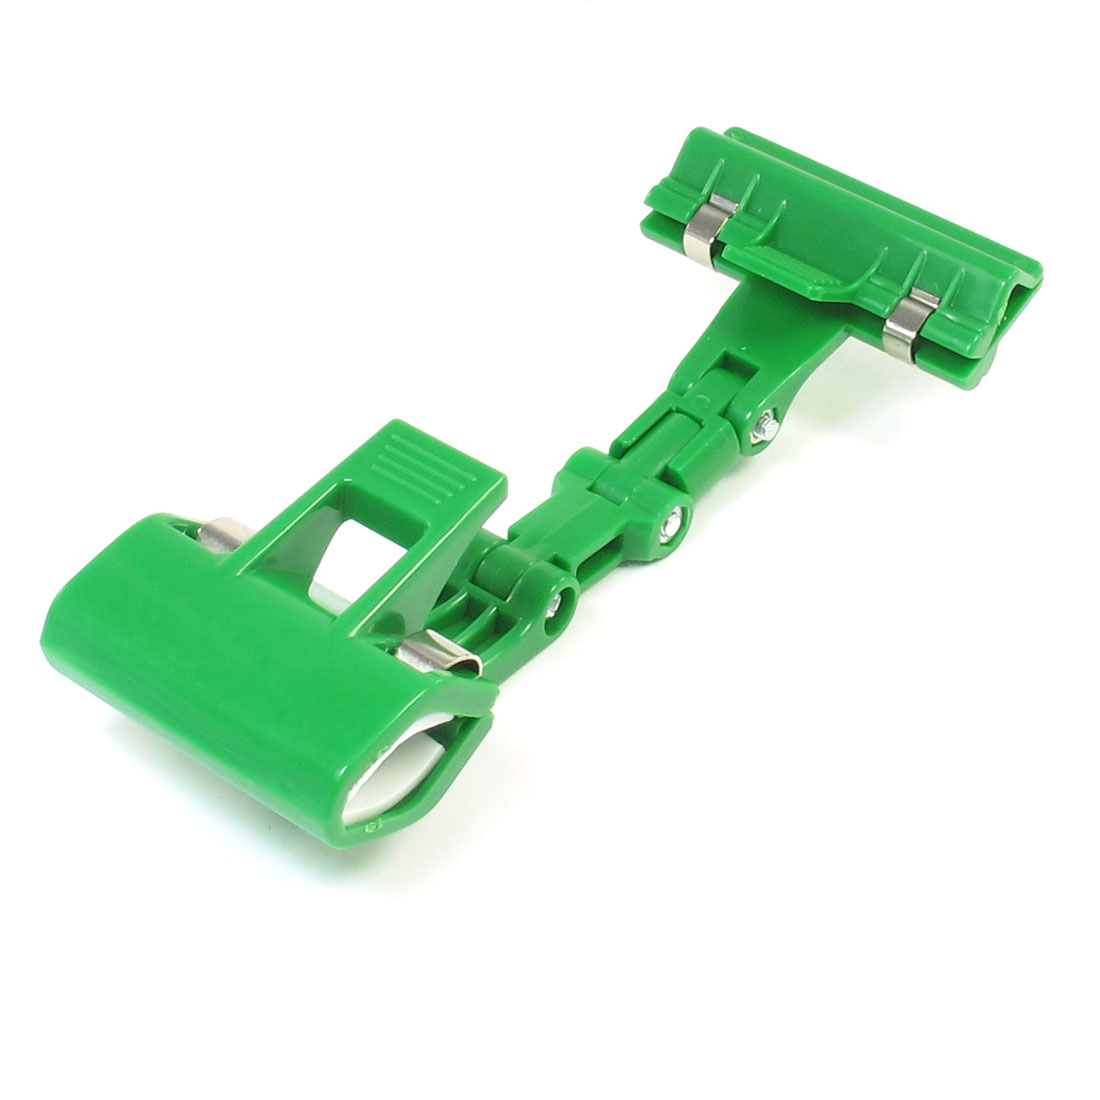 Green Plastic Pop Sign Card Display Clip Price Tags Holder